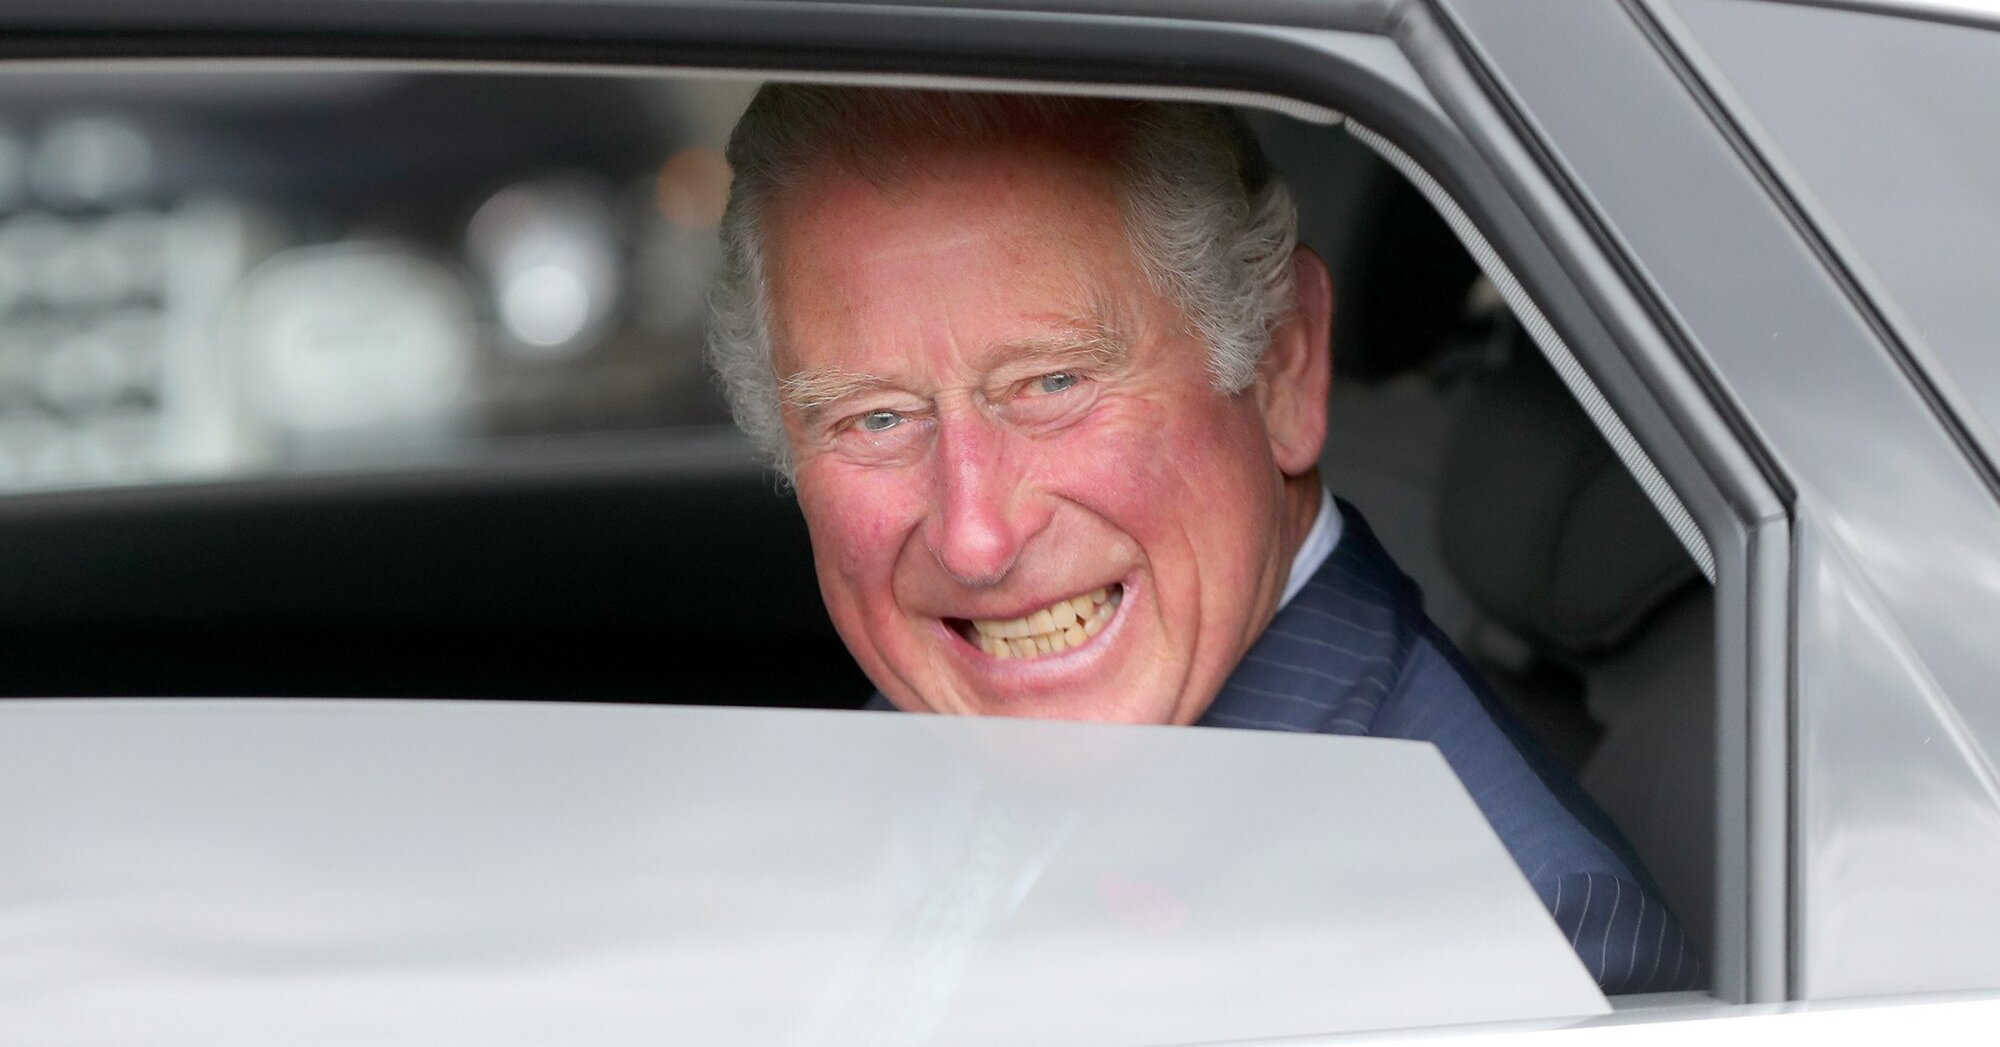 Prince Charles Has Never Looked So Happy to Be Back to Work — See the Excited Royal in Action